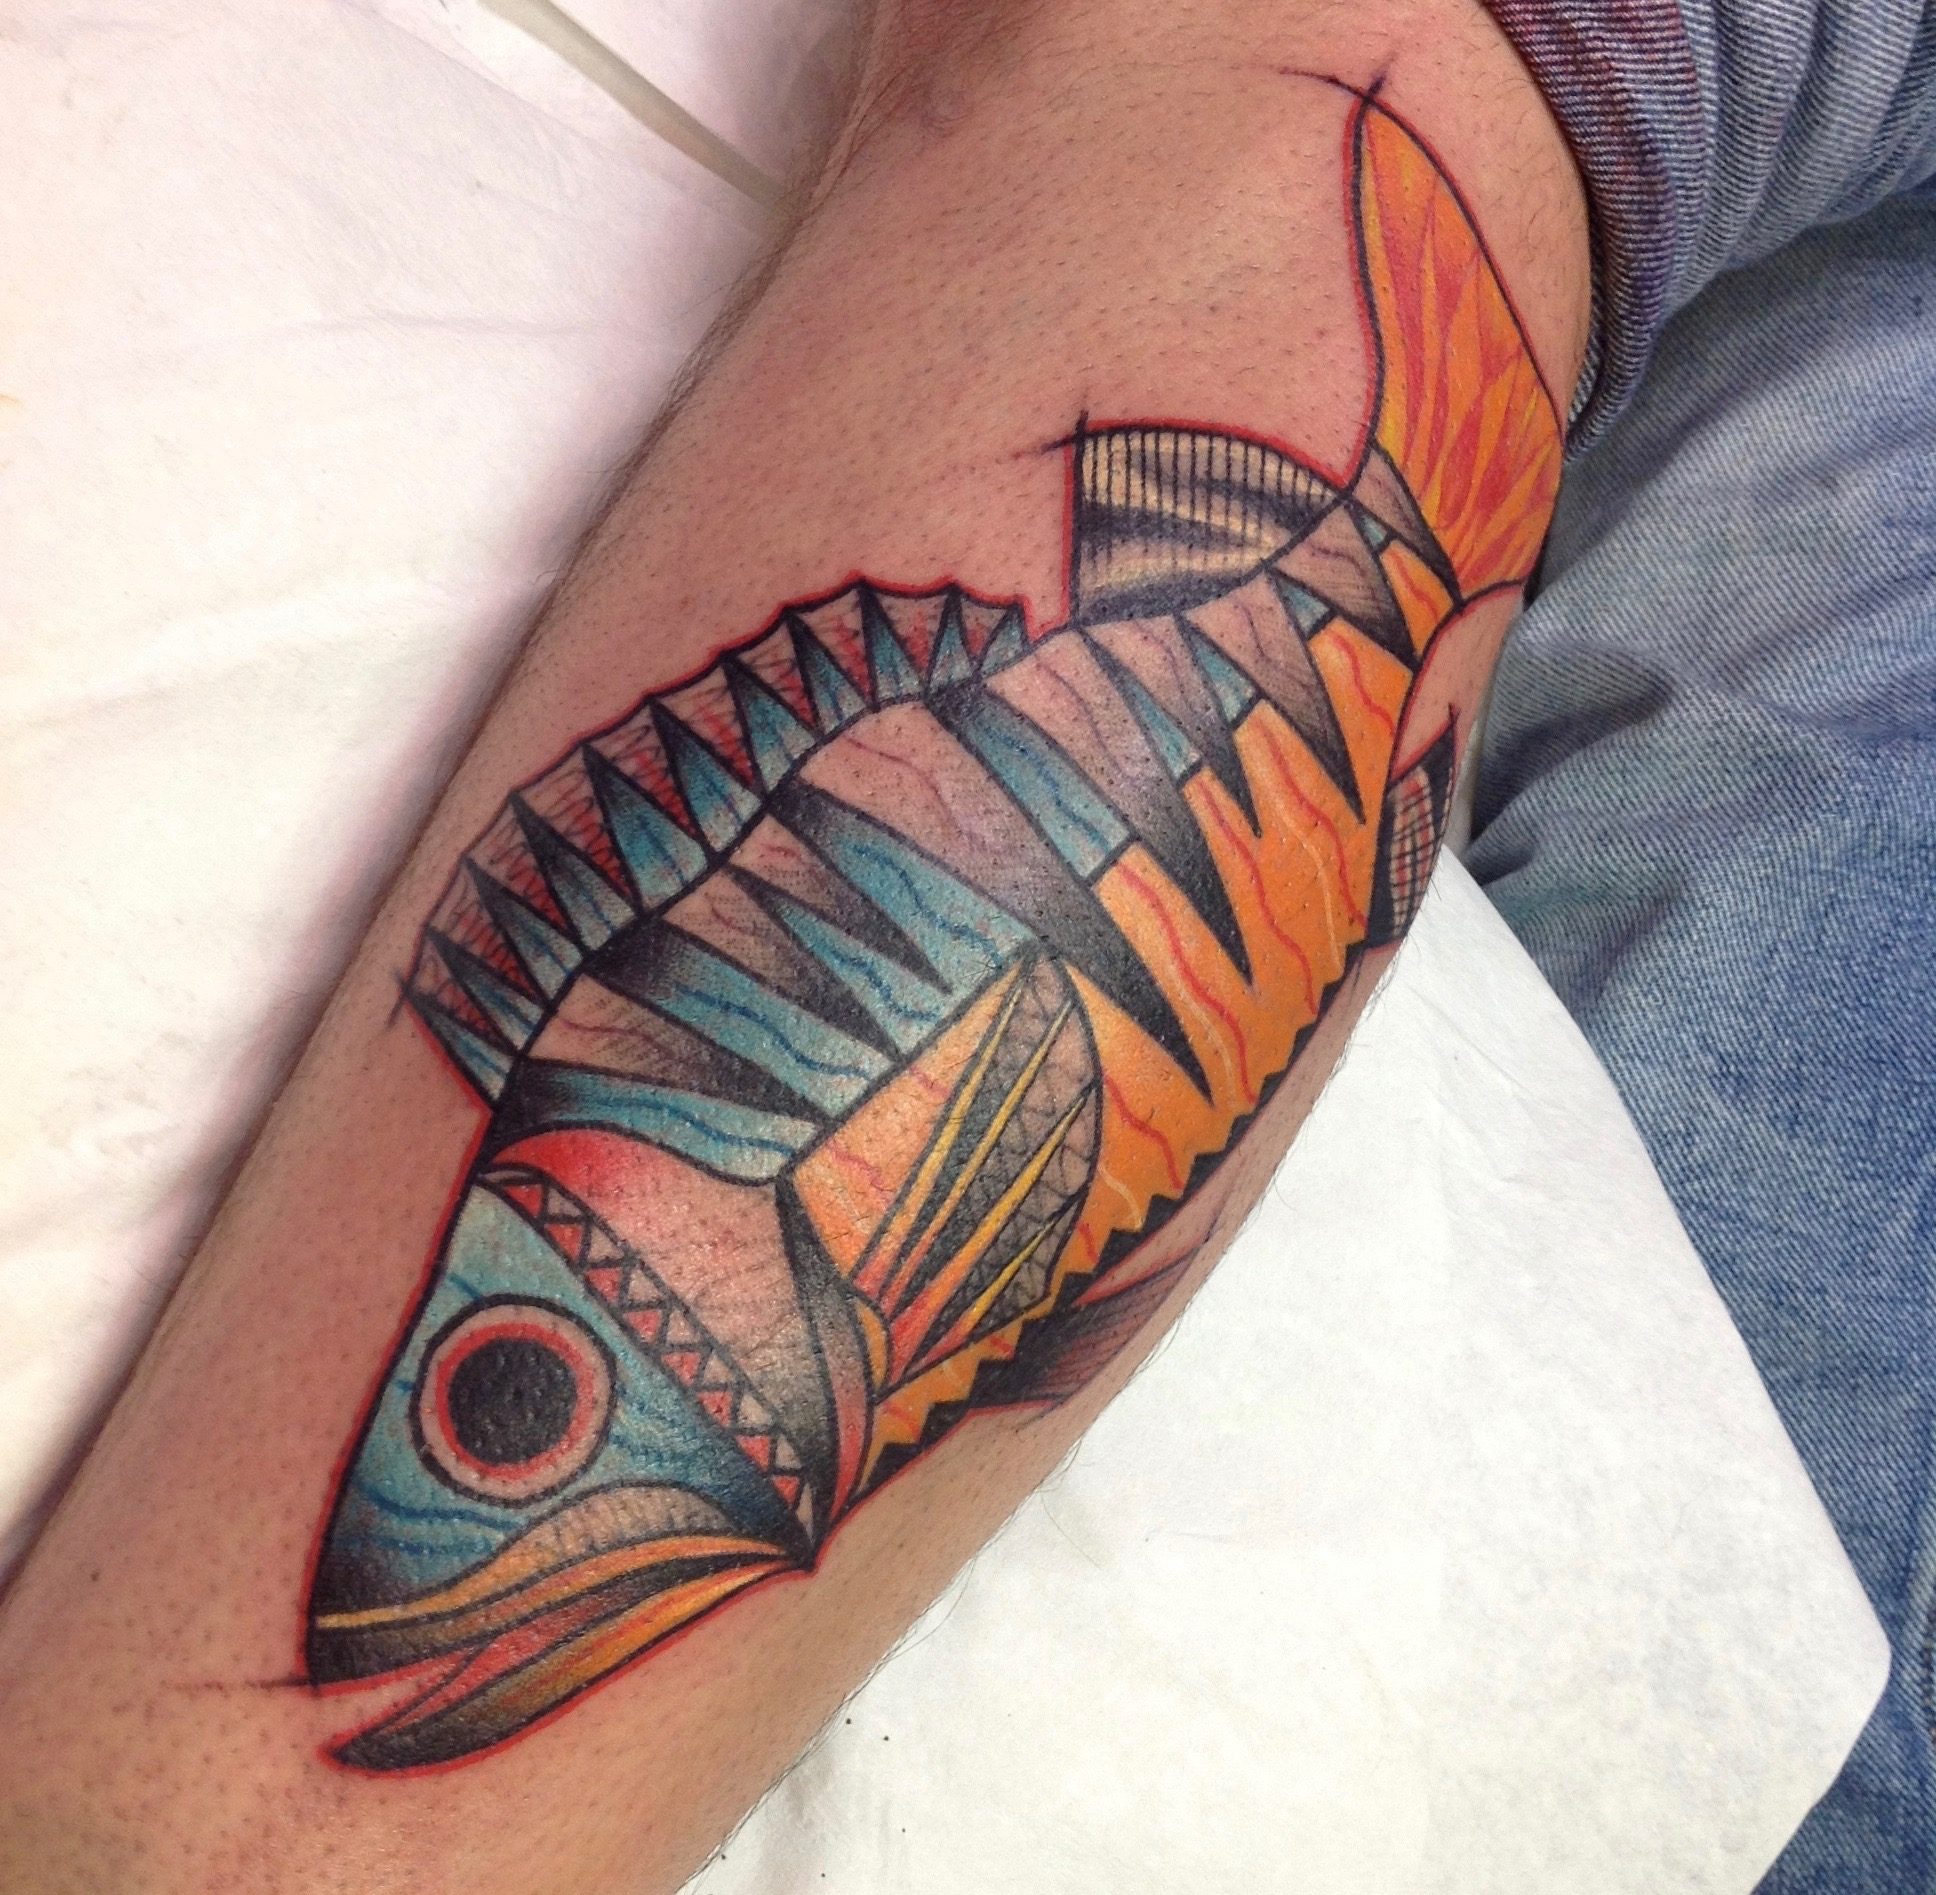 Perch tattoo